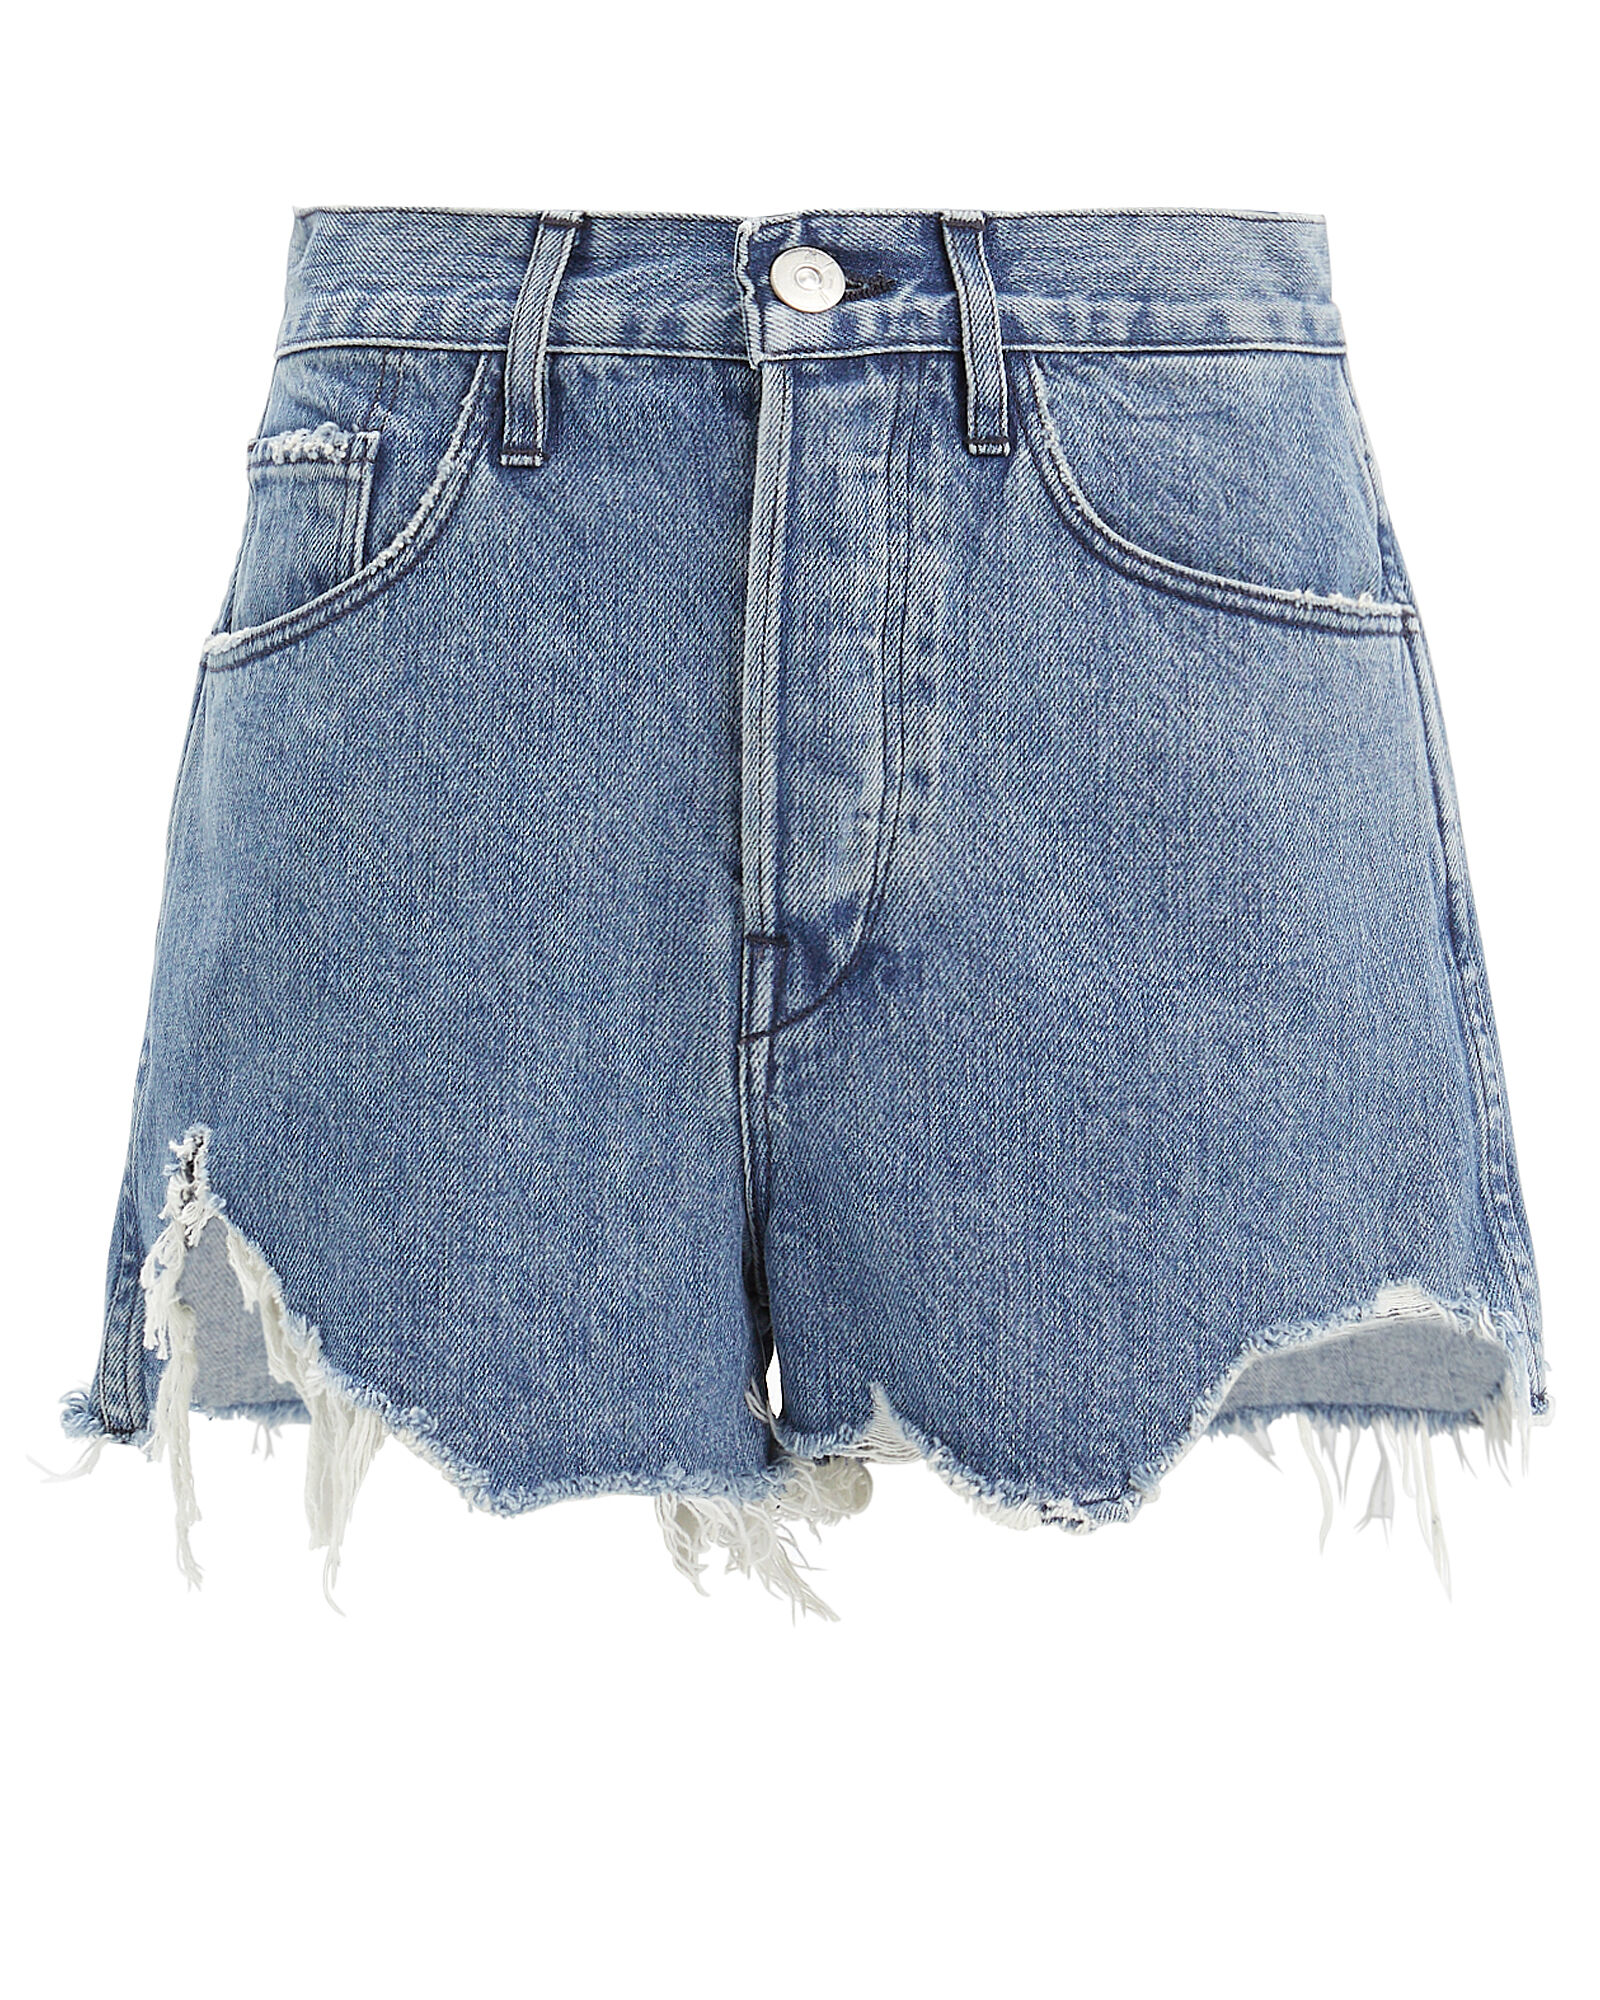 Carter Cut-Off Denim Shorts, DENIM, hi-res